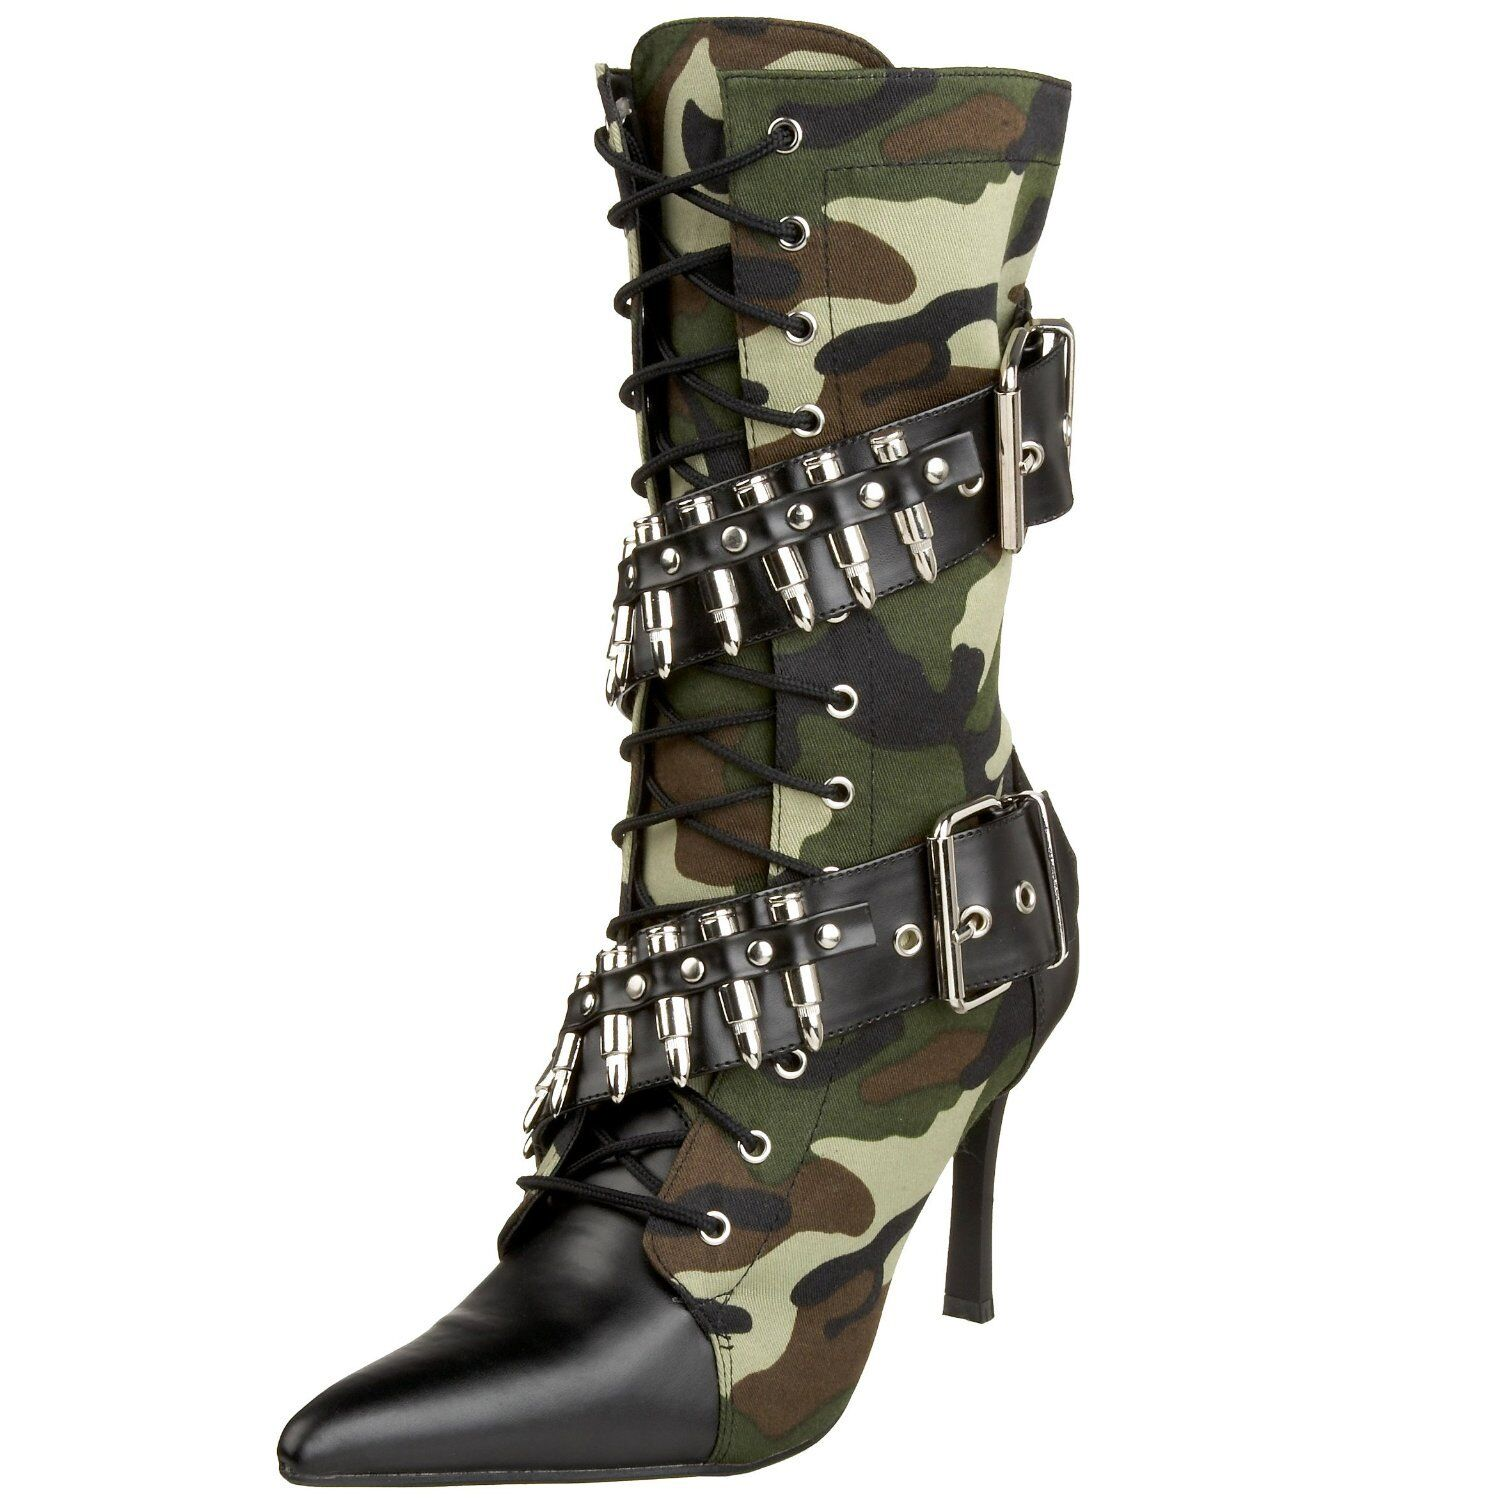 Funtasma Militant-128 Cop-911 Police-201 Spicy-138 Women's Military Boots